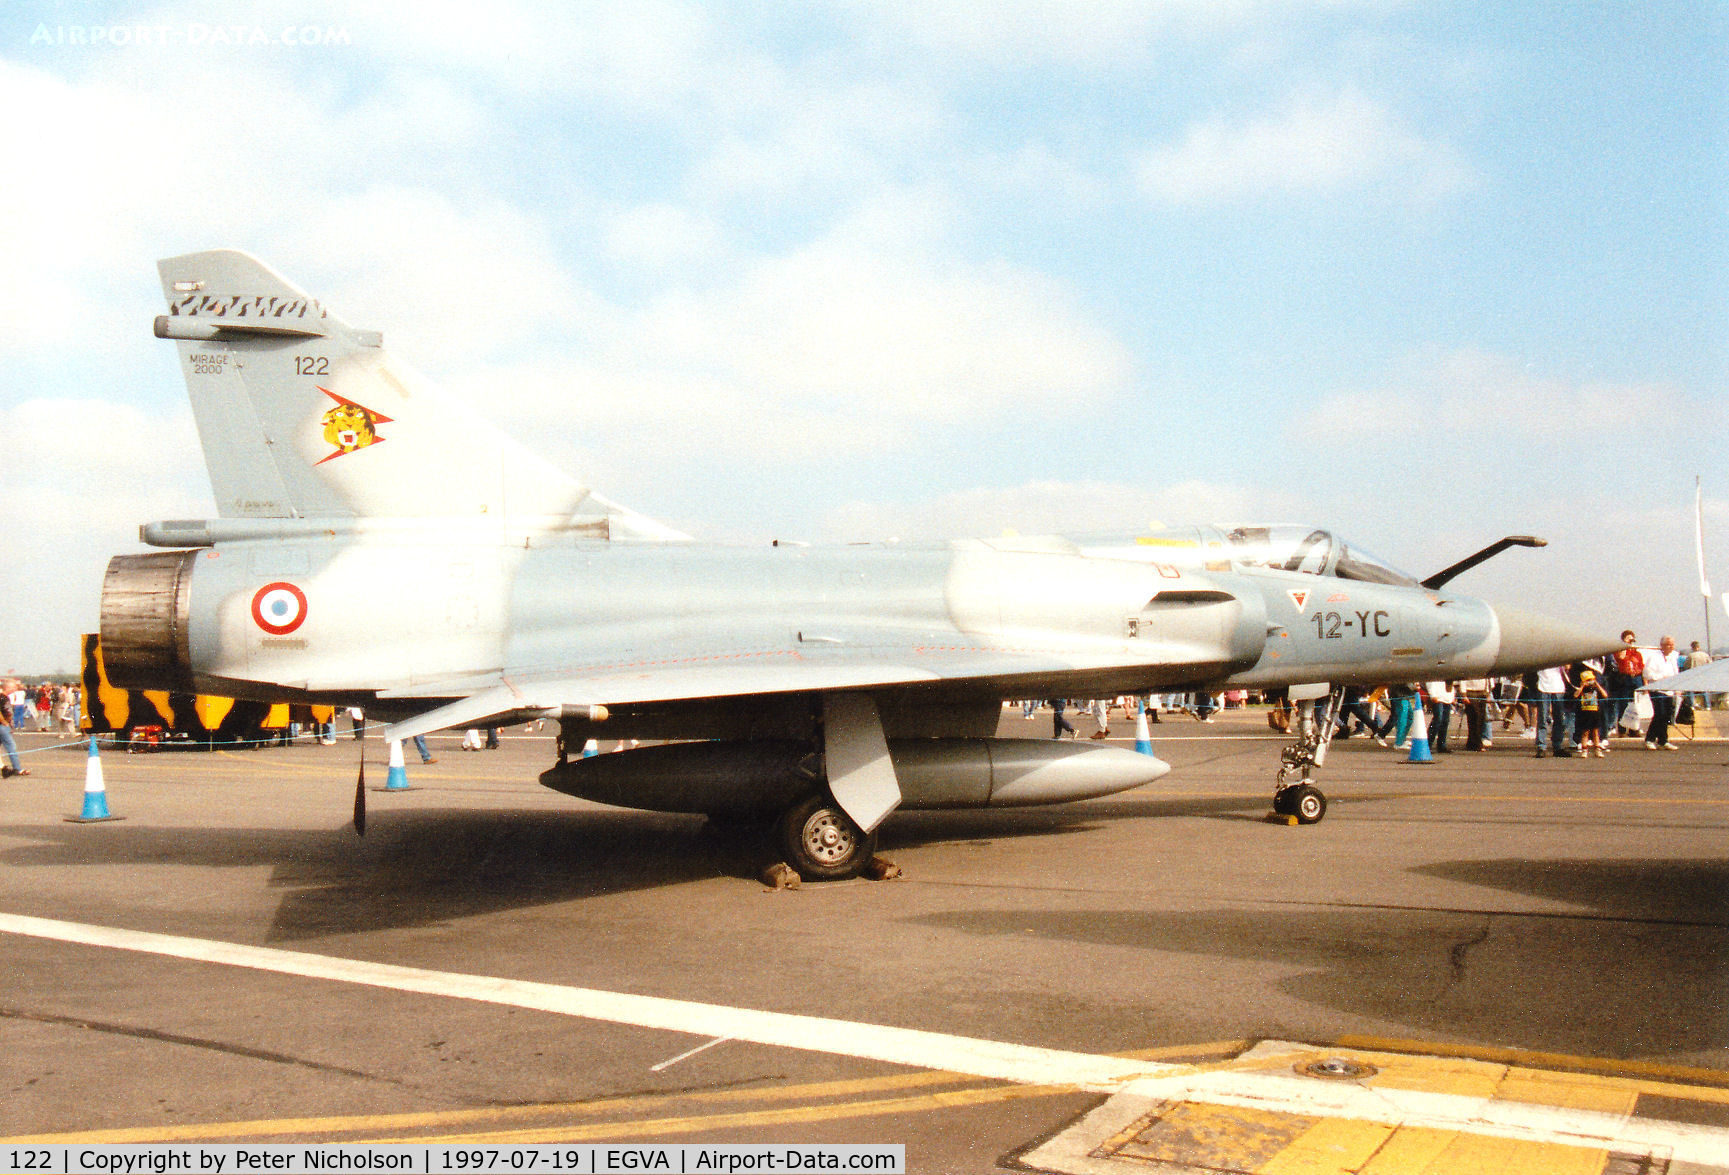 122, Dassault Mirage 2000C C/N 405, Mirage 2000C, callsign French Air Force 7600, of EC 01.012 on display at the 1997 Intnl Air Tattoo at RAF Fairford.